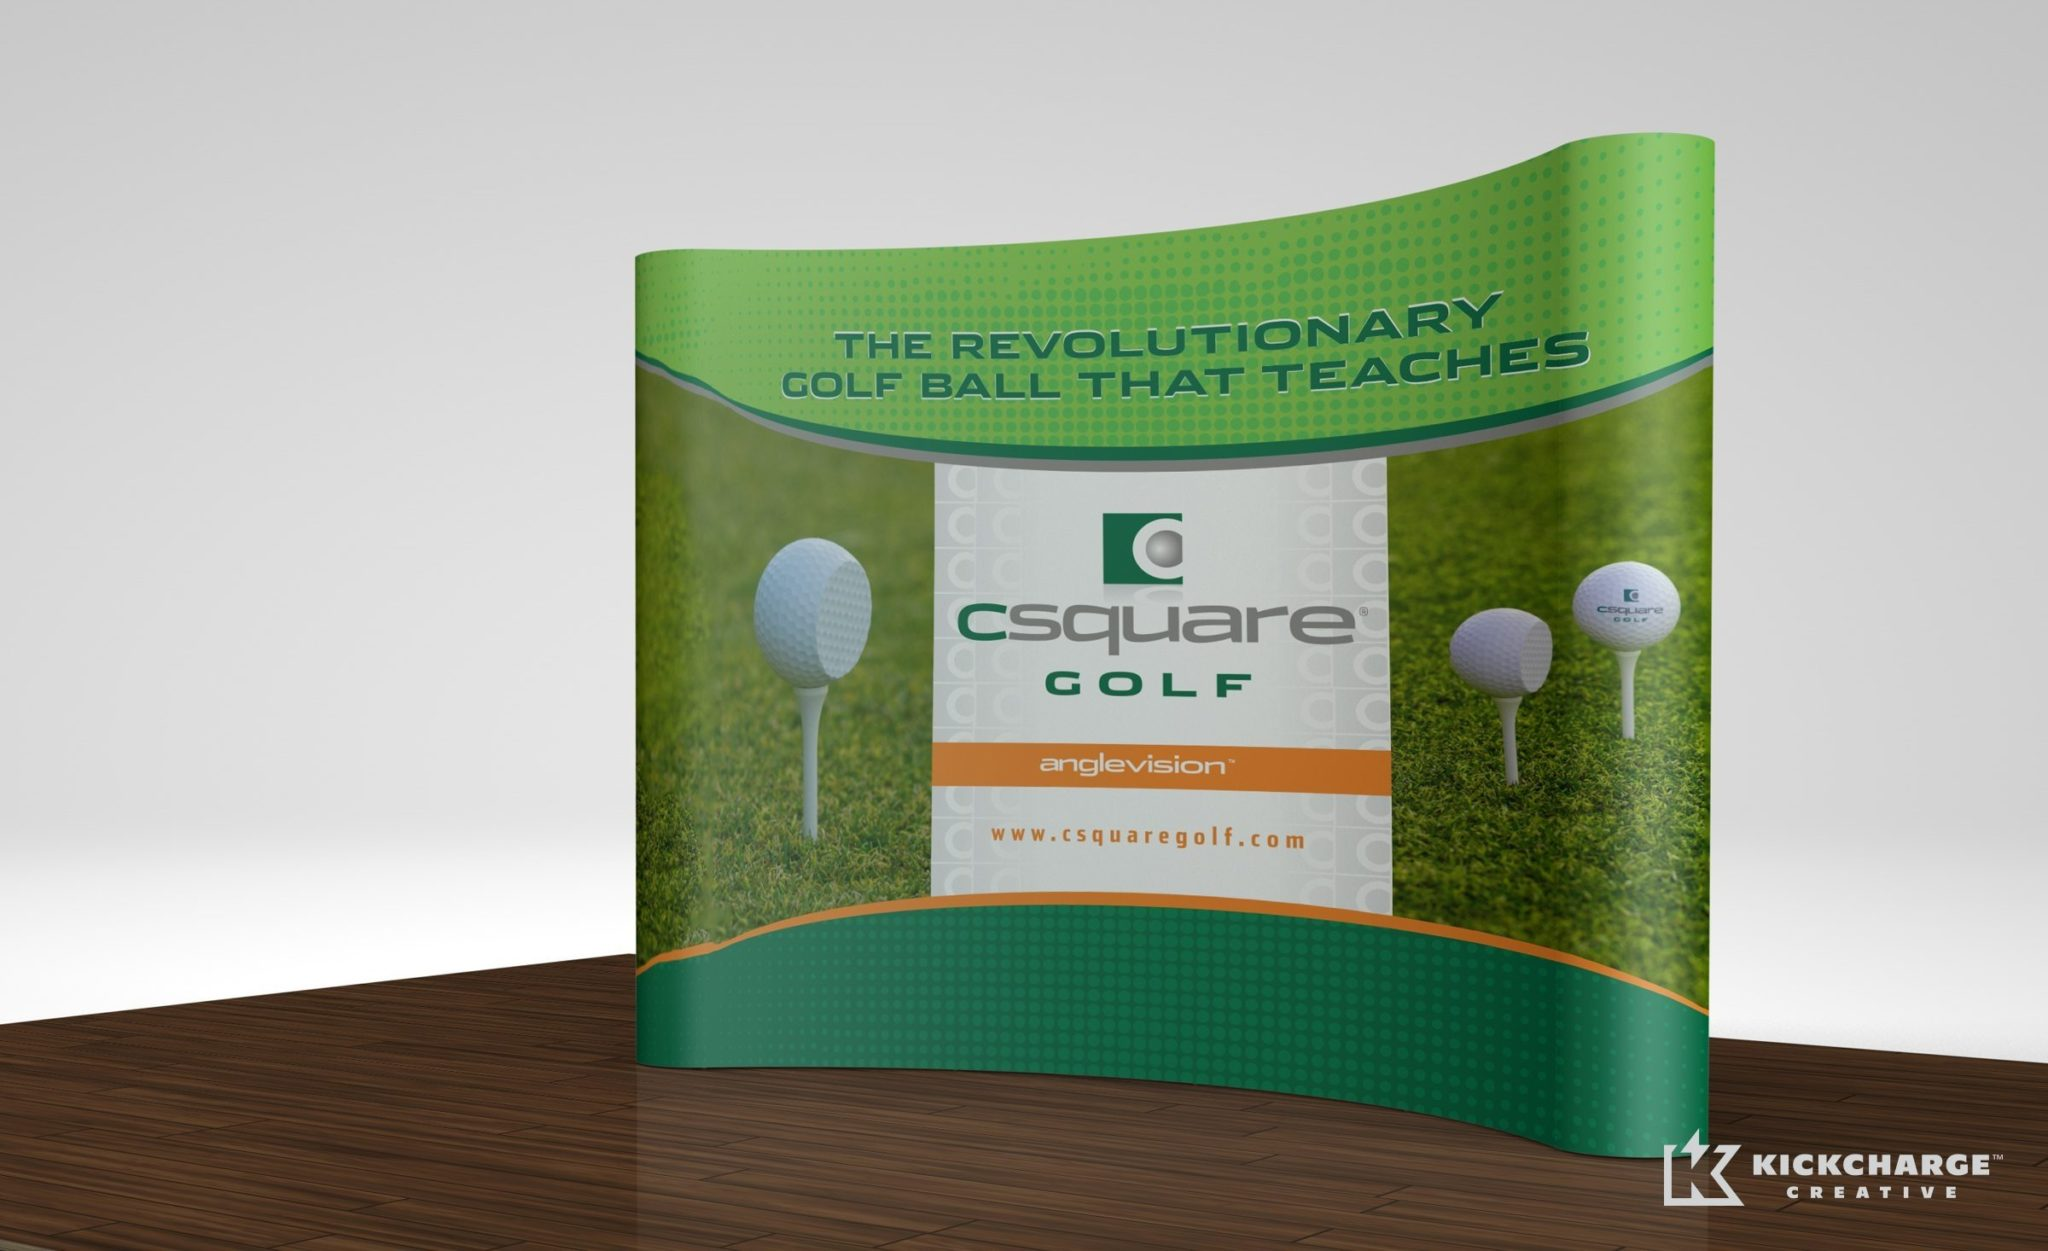 Booth design for CSquare Golf.